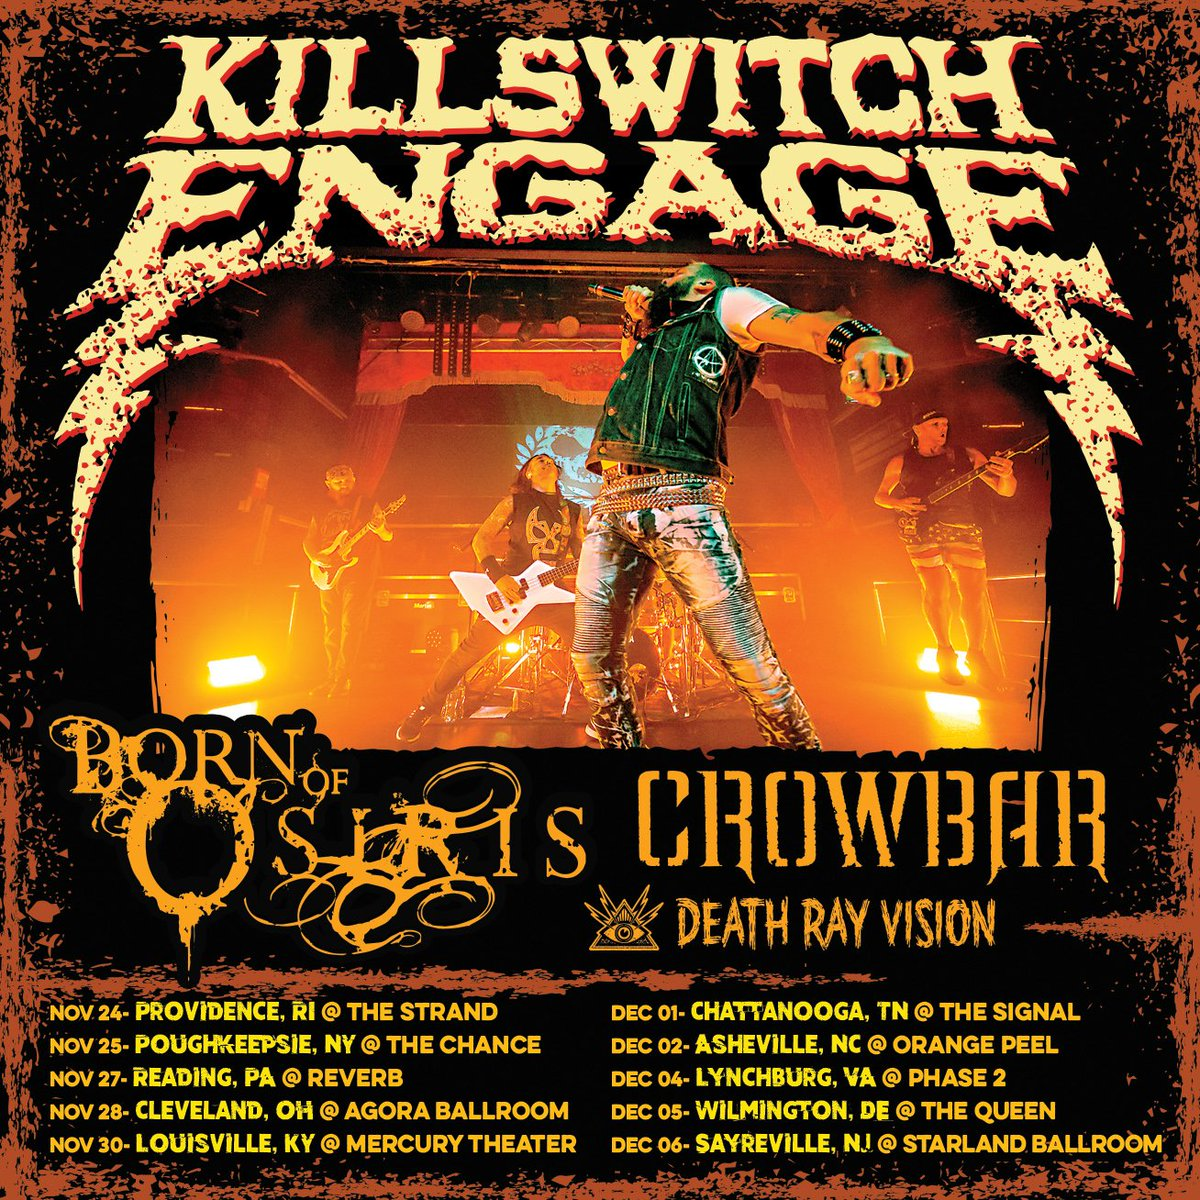 Killswitch engage kseofficial twitter side stage access and meet and greets are available now futurebeat httpfuture beatartistmid6480 picittera361tywxyv m4hsunfo